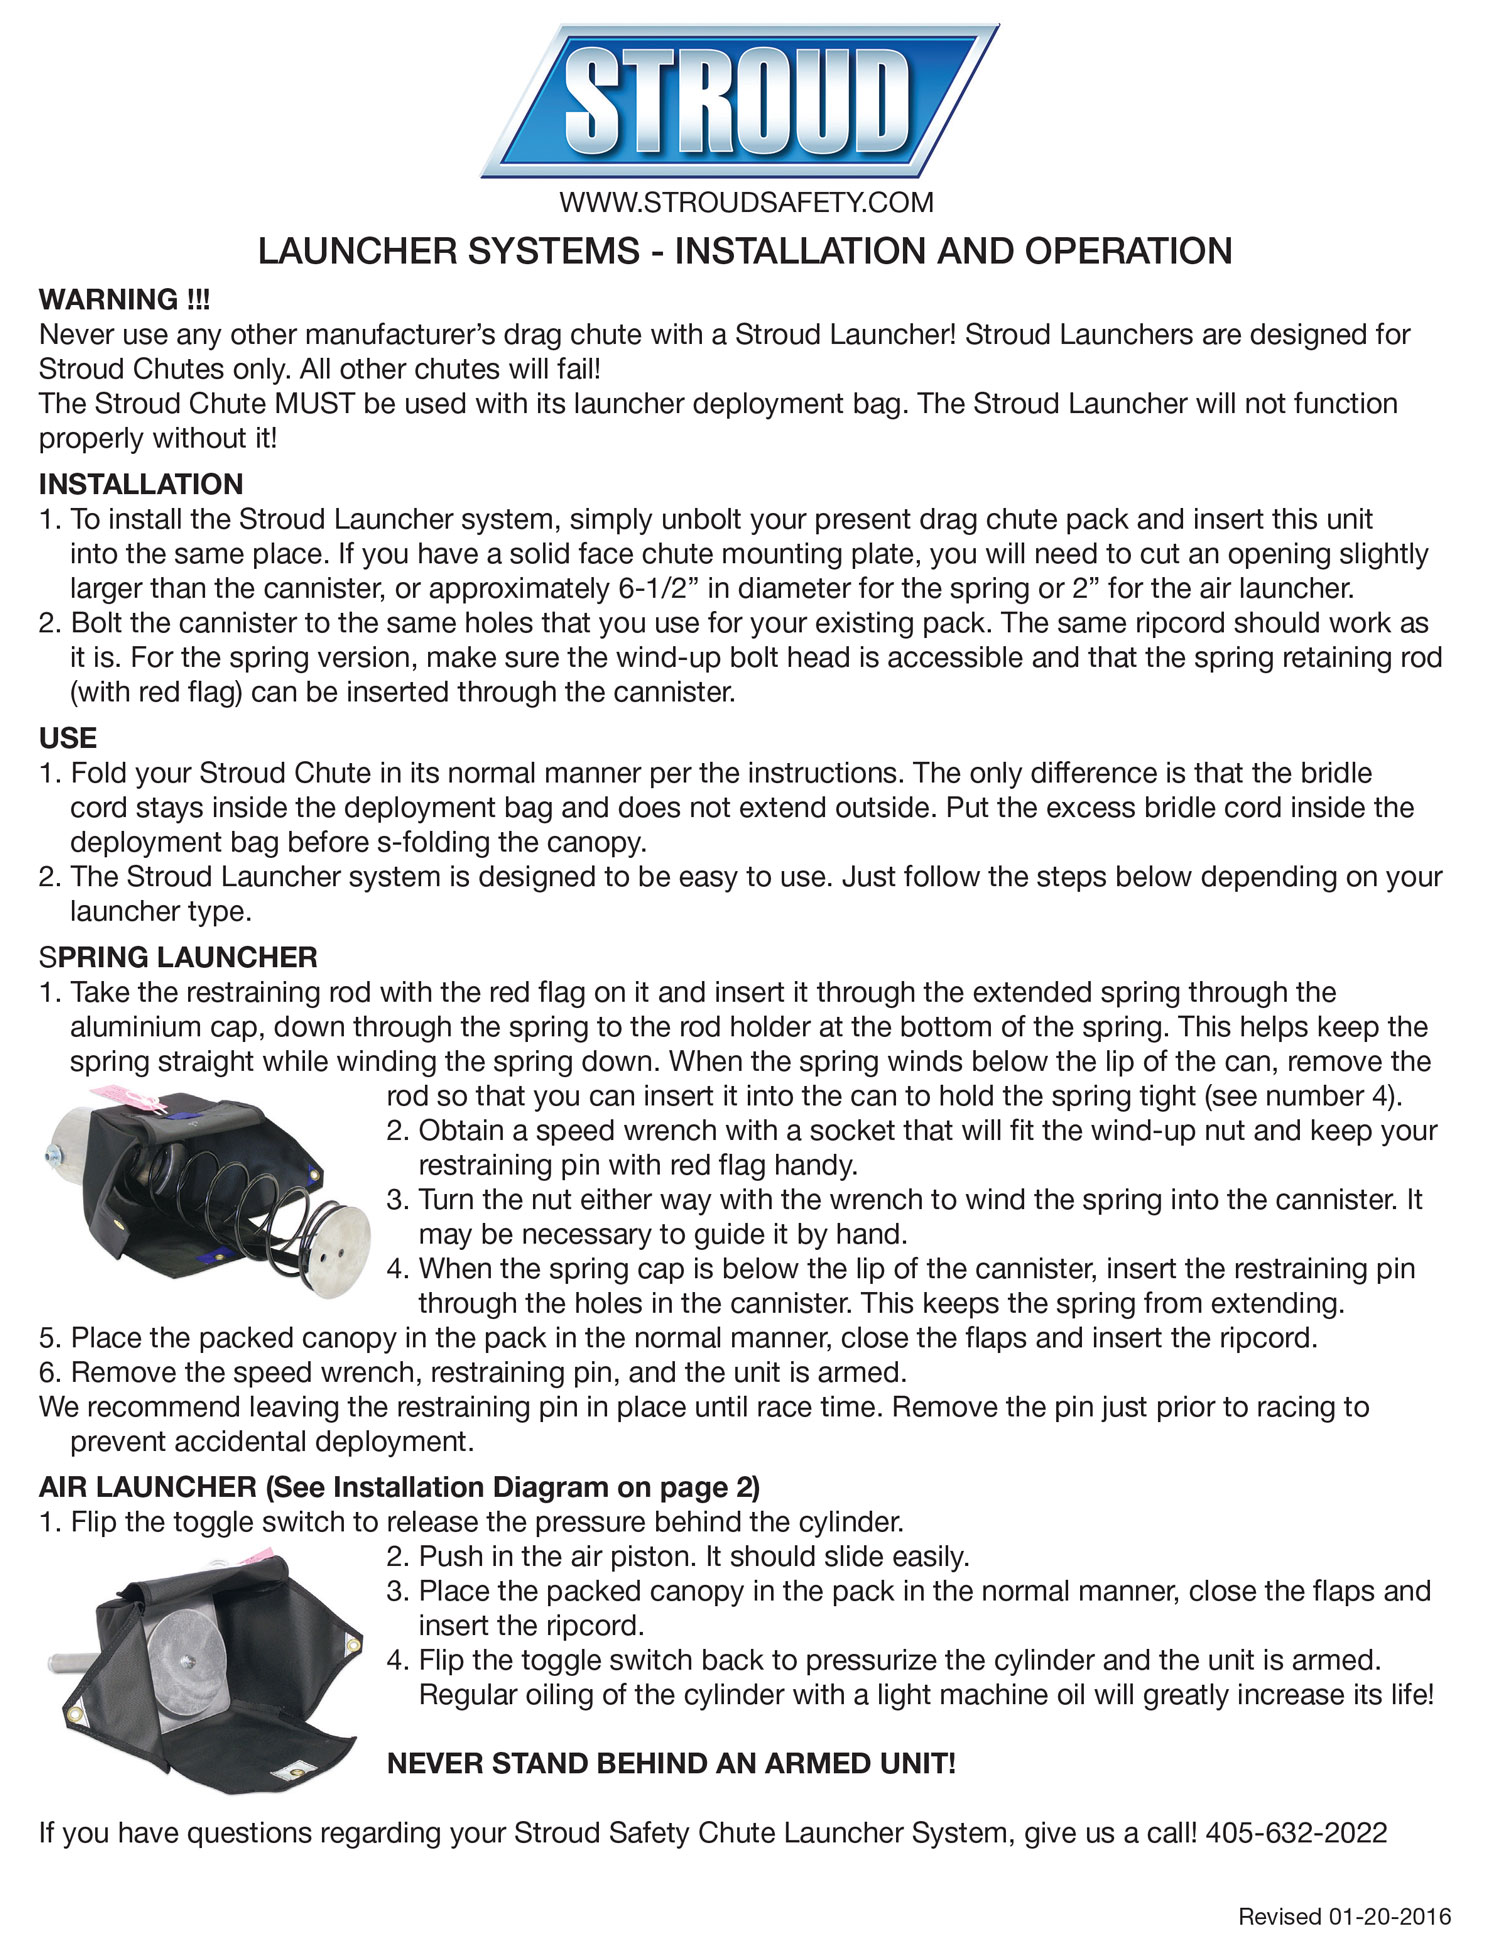 Stroud Chute Launcher Installation Instruction   Use  this chart  for installation and operation of spring and air launchers.